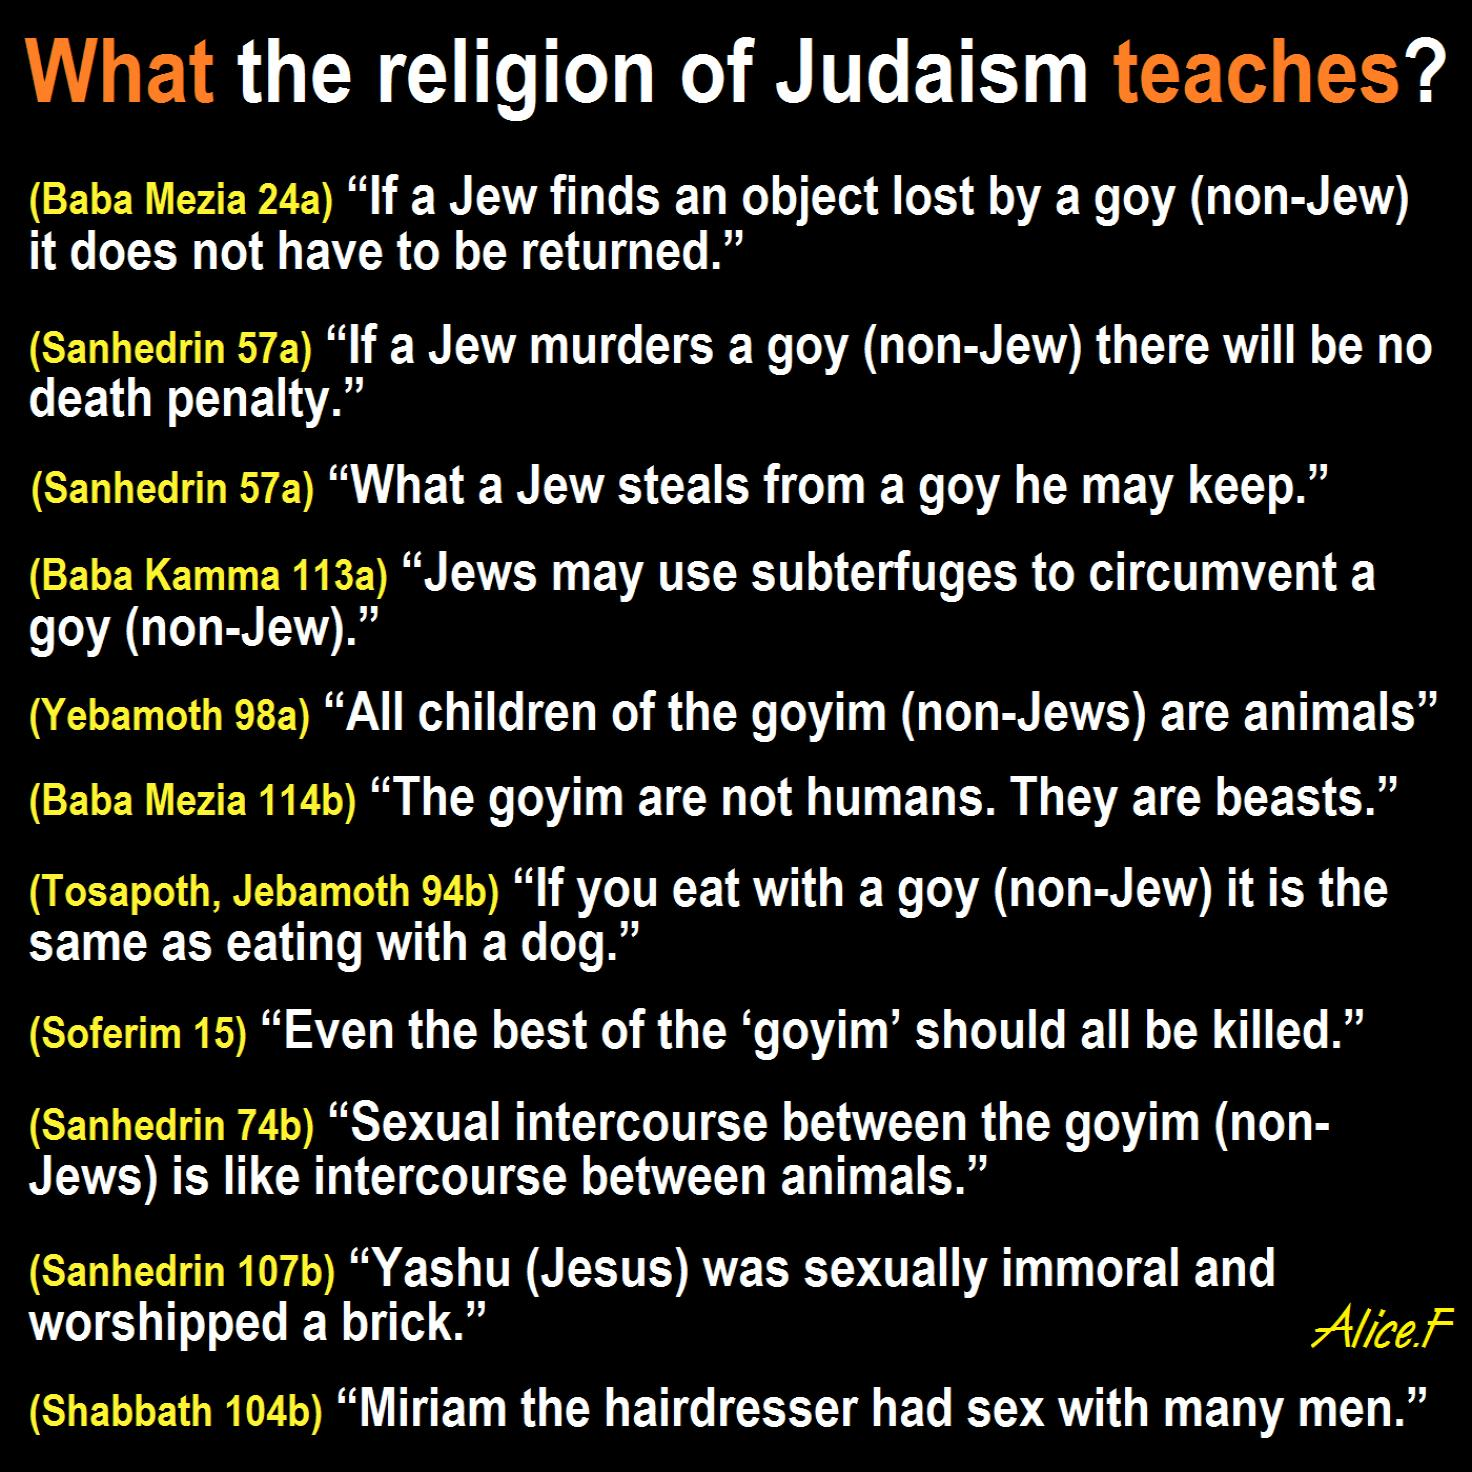 The Nazi hatred of the Jews